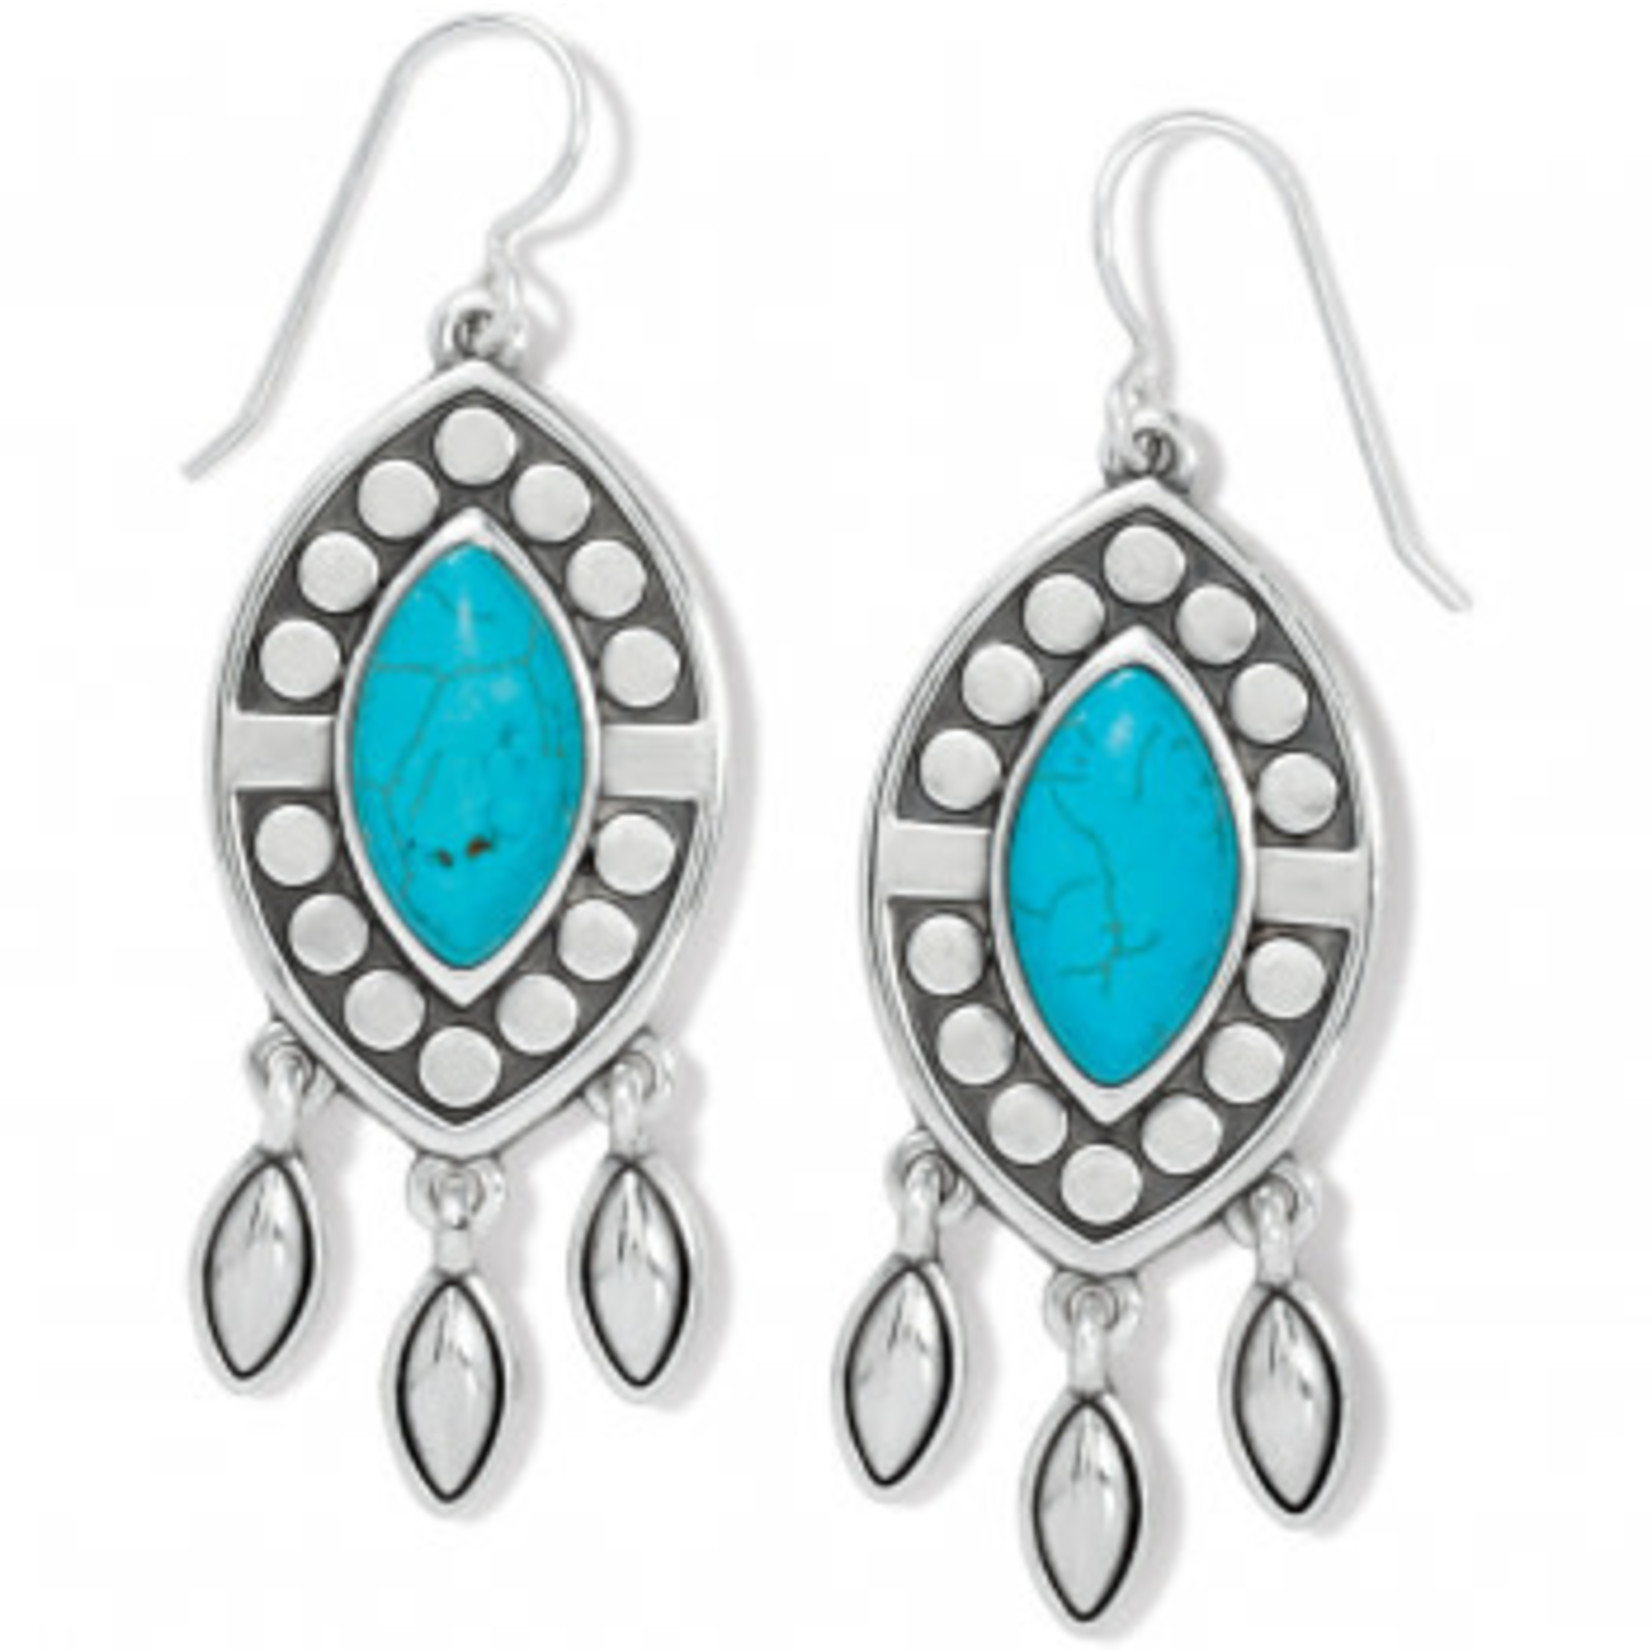 Brighton Pebble Dot Dream French Wire Earrings - Silver-Turquoise, OS